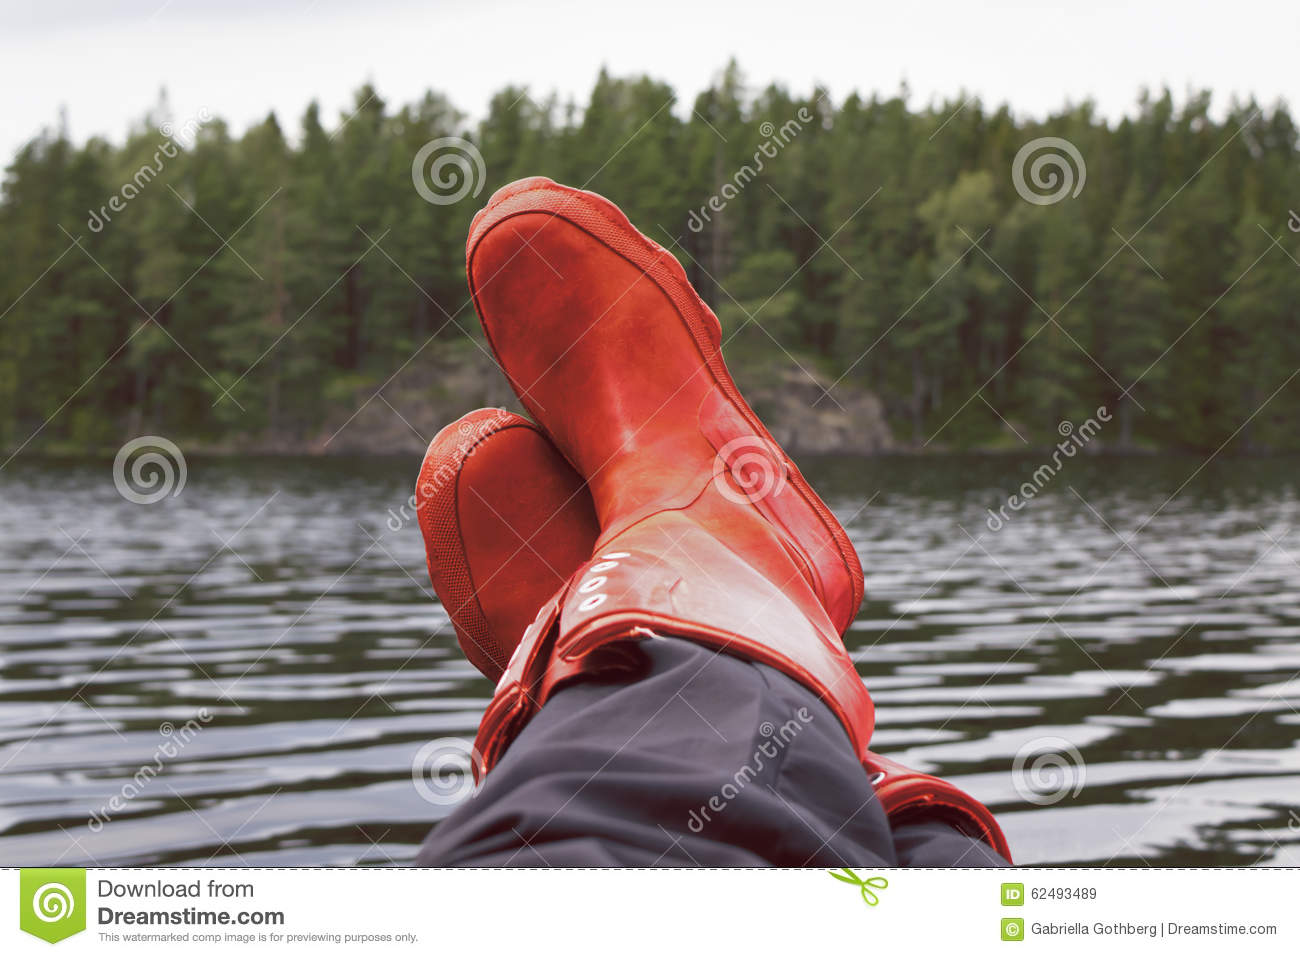 Fisherman taking a break with rubber boots resting on bulwark.